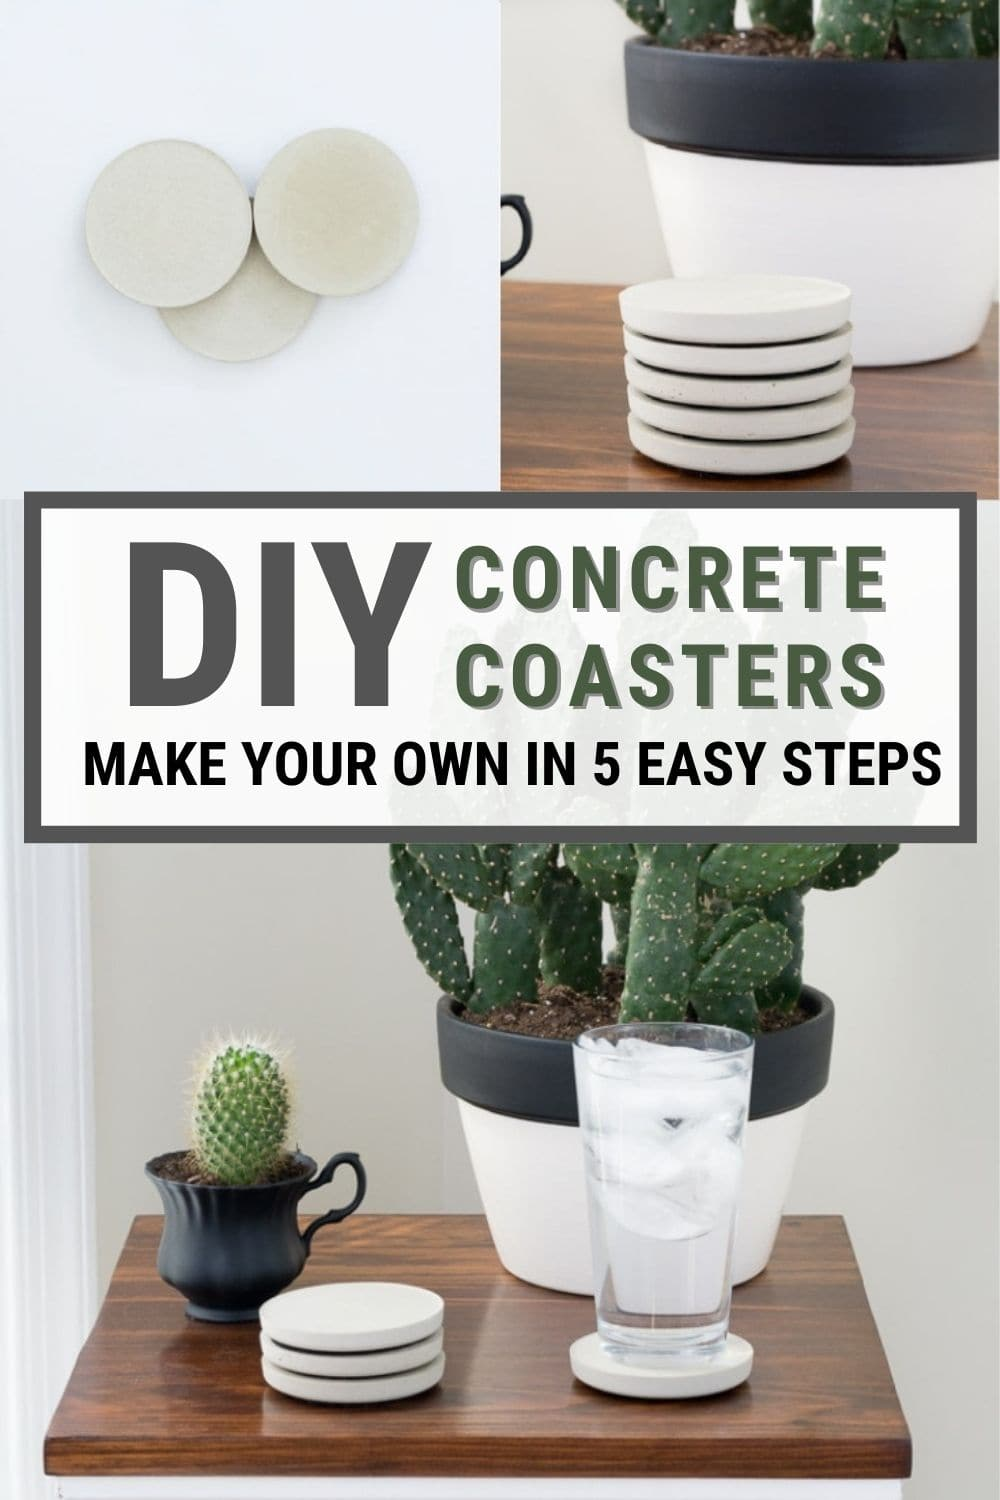 image collage of concrete coasters with text DIY Concrete Coasters Make your Own in 5 Easy Steps